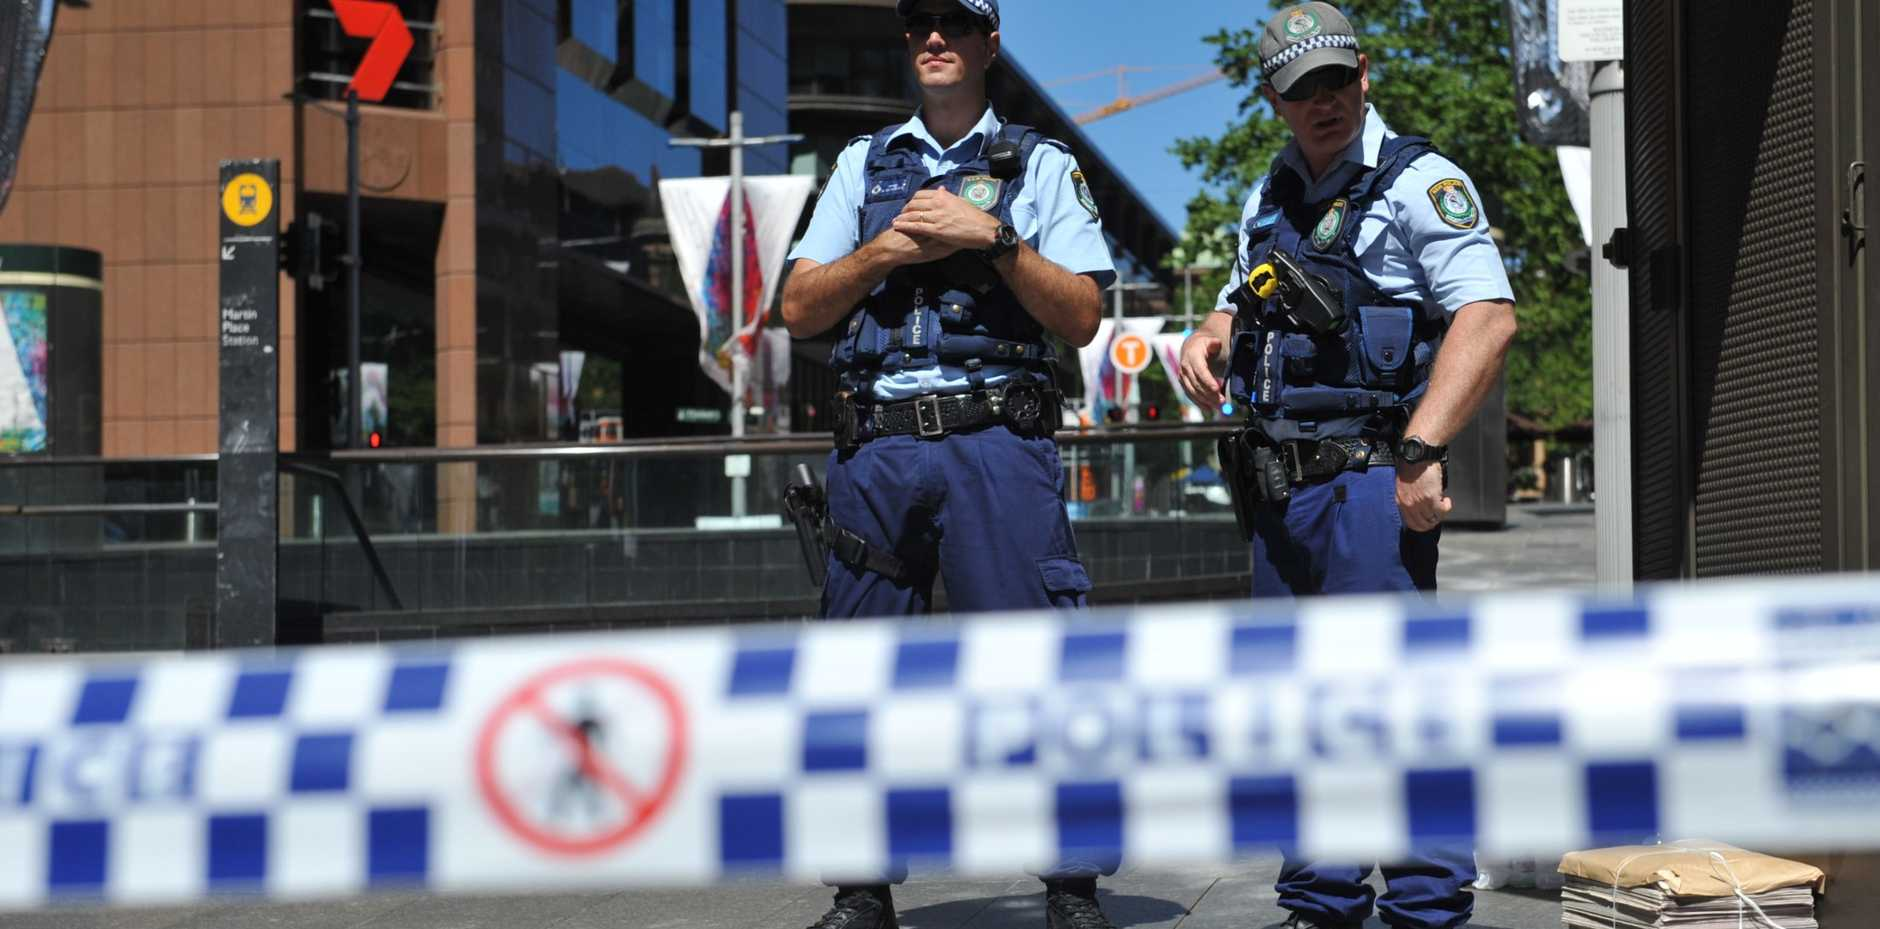 NSW Police are seen in Martin Place near the Lindt Cafe in the central business district of Sydney, Monday, Dec. 15, 2014.  (AAP Image/Joel Carrett)